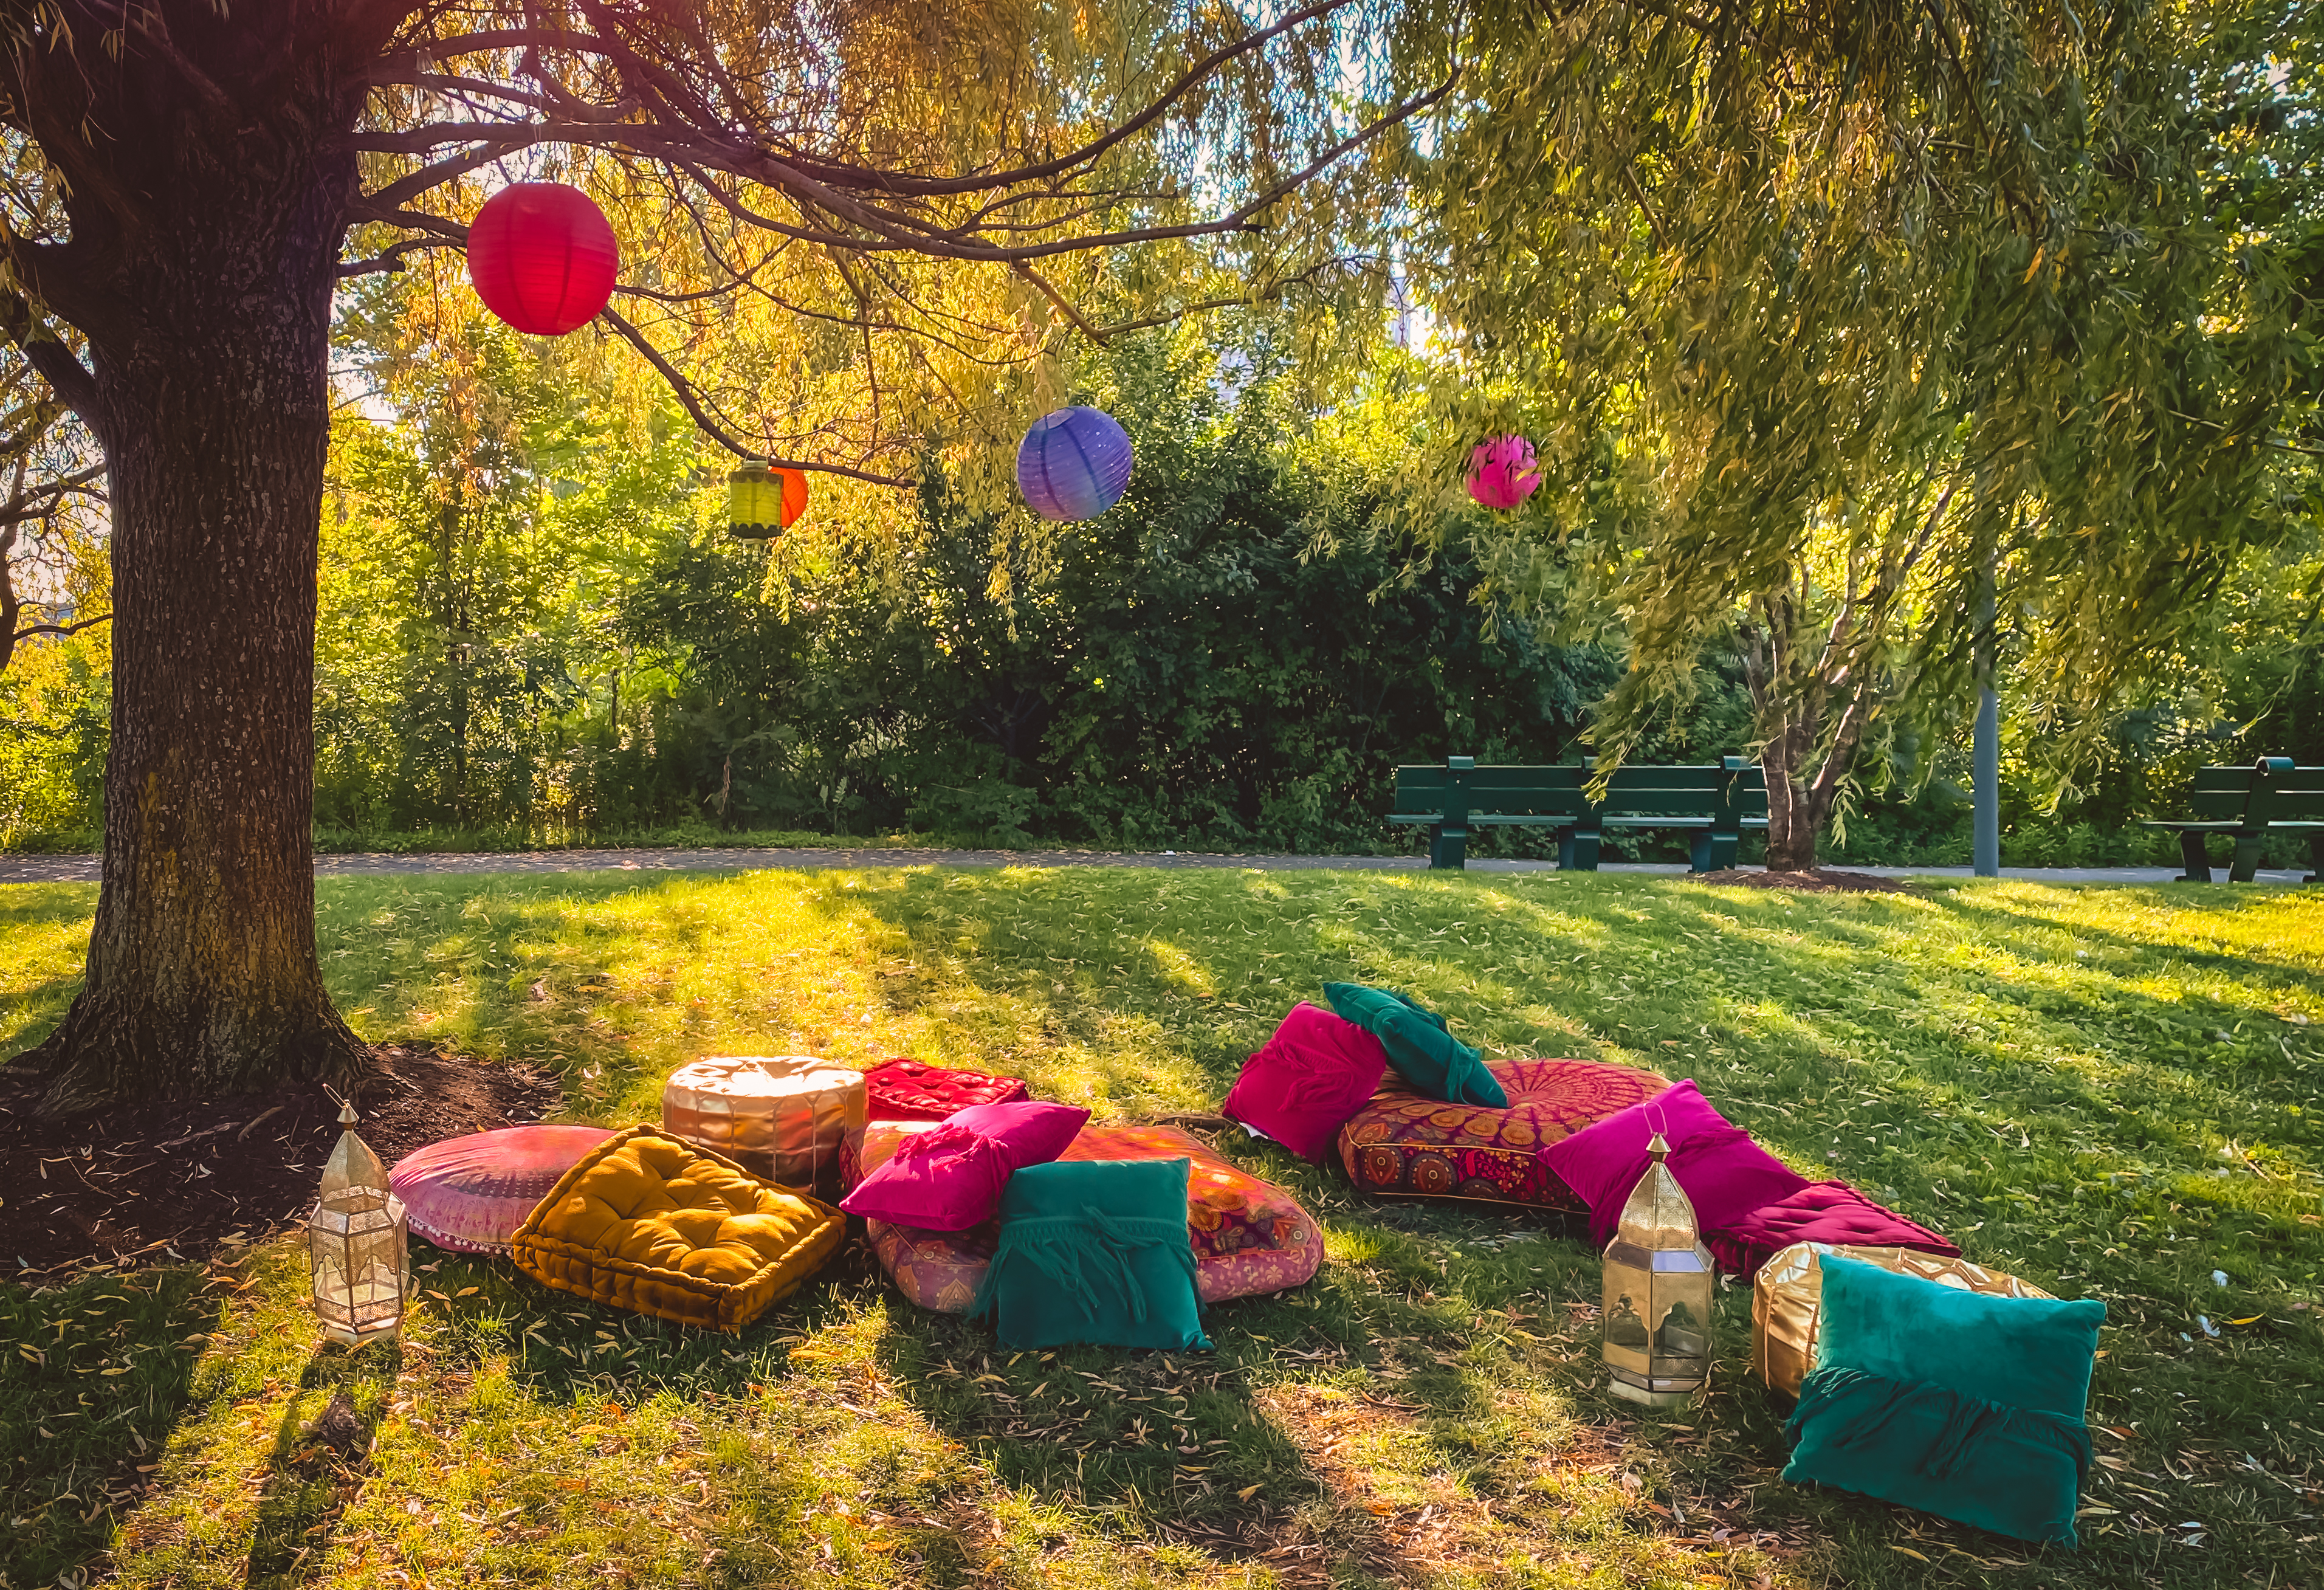 Colorful hanging lanterns and cushions in park for Eid